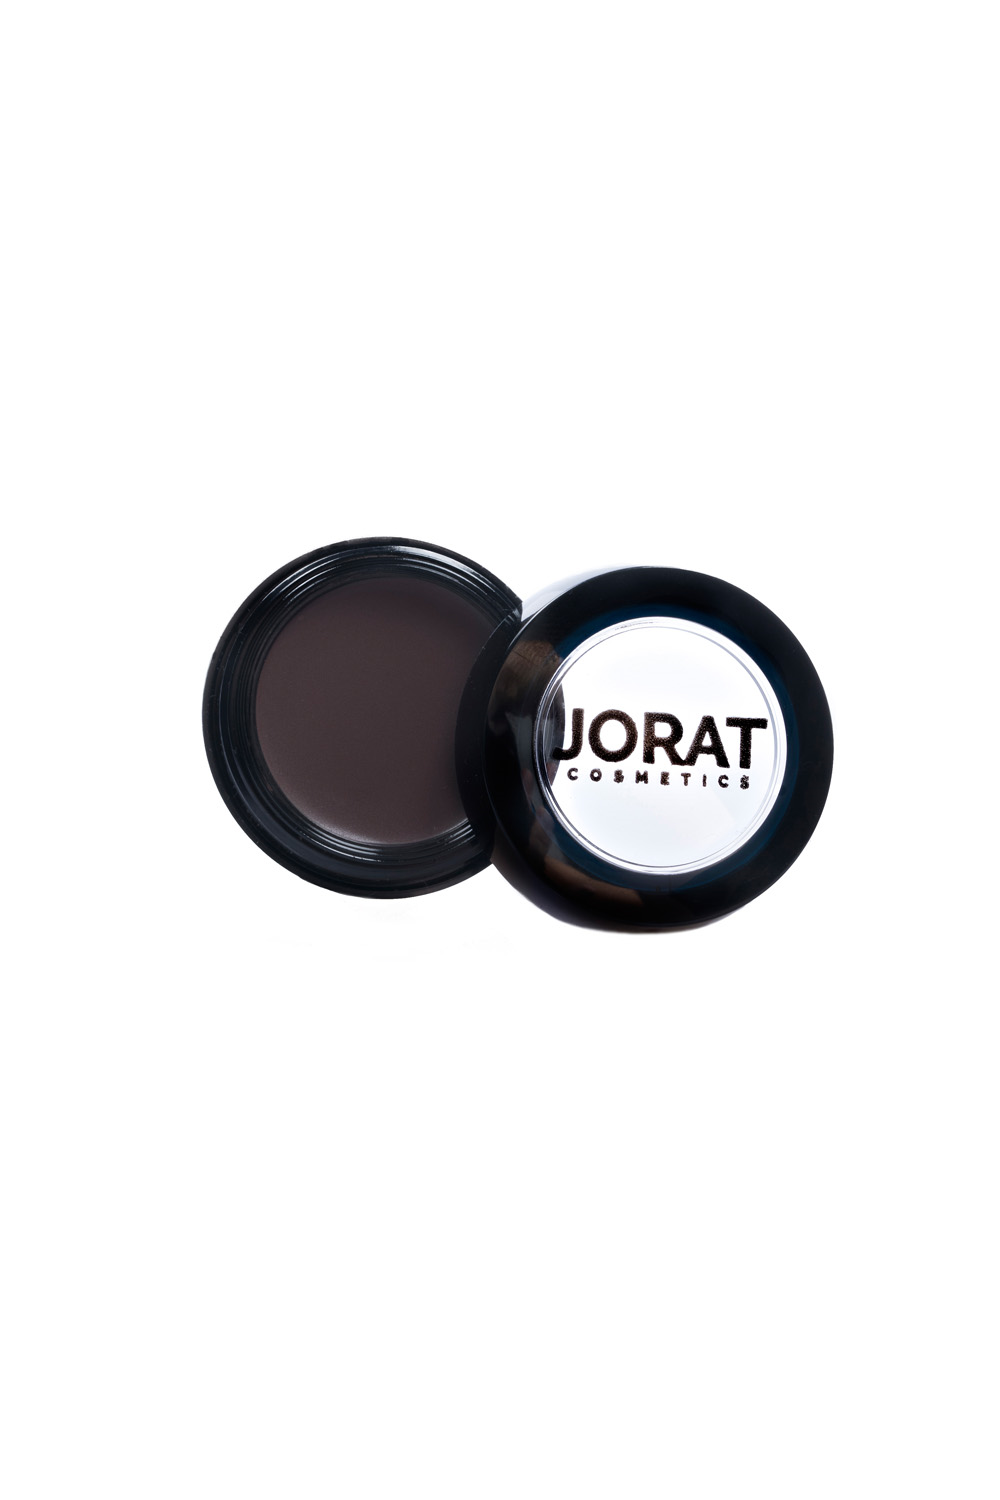 Jorat Cosmetics Brow Gel Light Brown